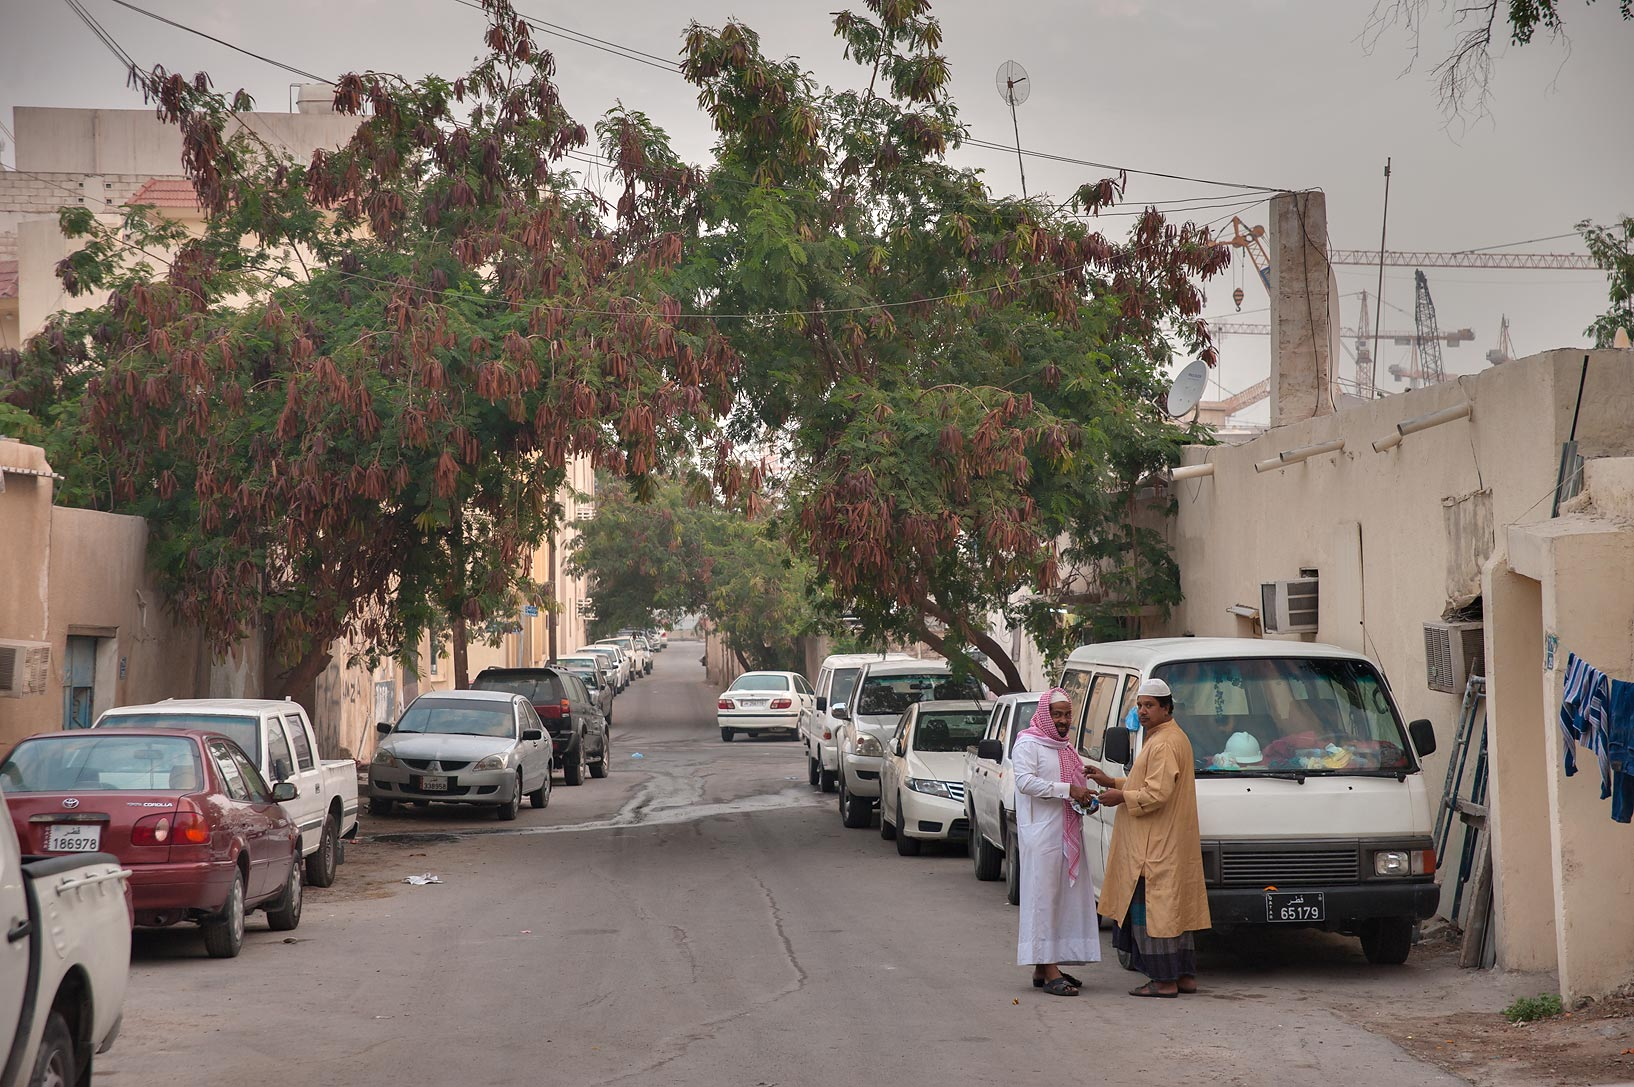 White leadtree (jumbay, Leucaena leucocephala) on a street in Musheirib area. Doha, Qatar